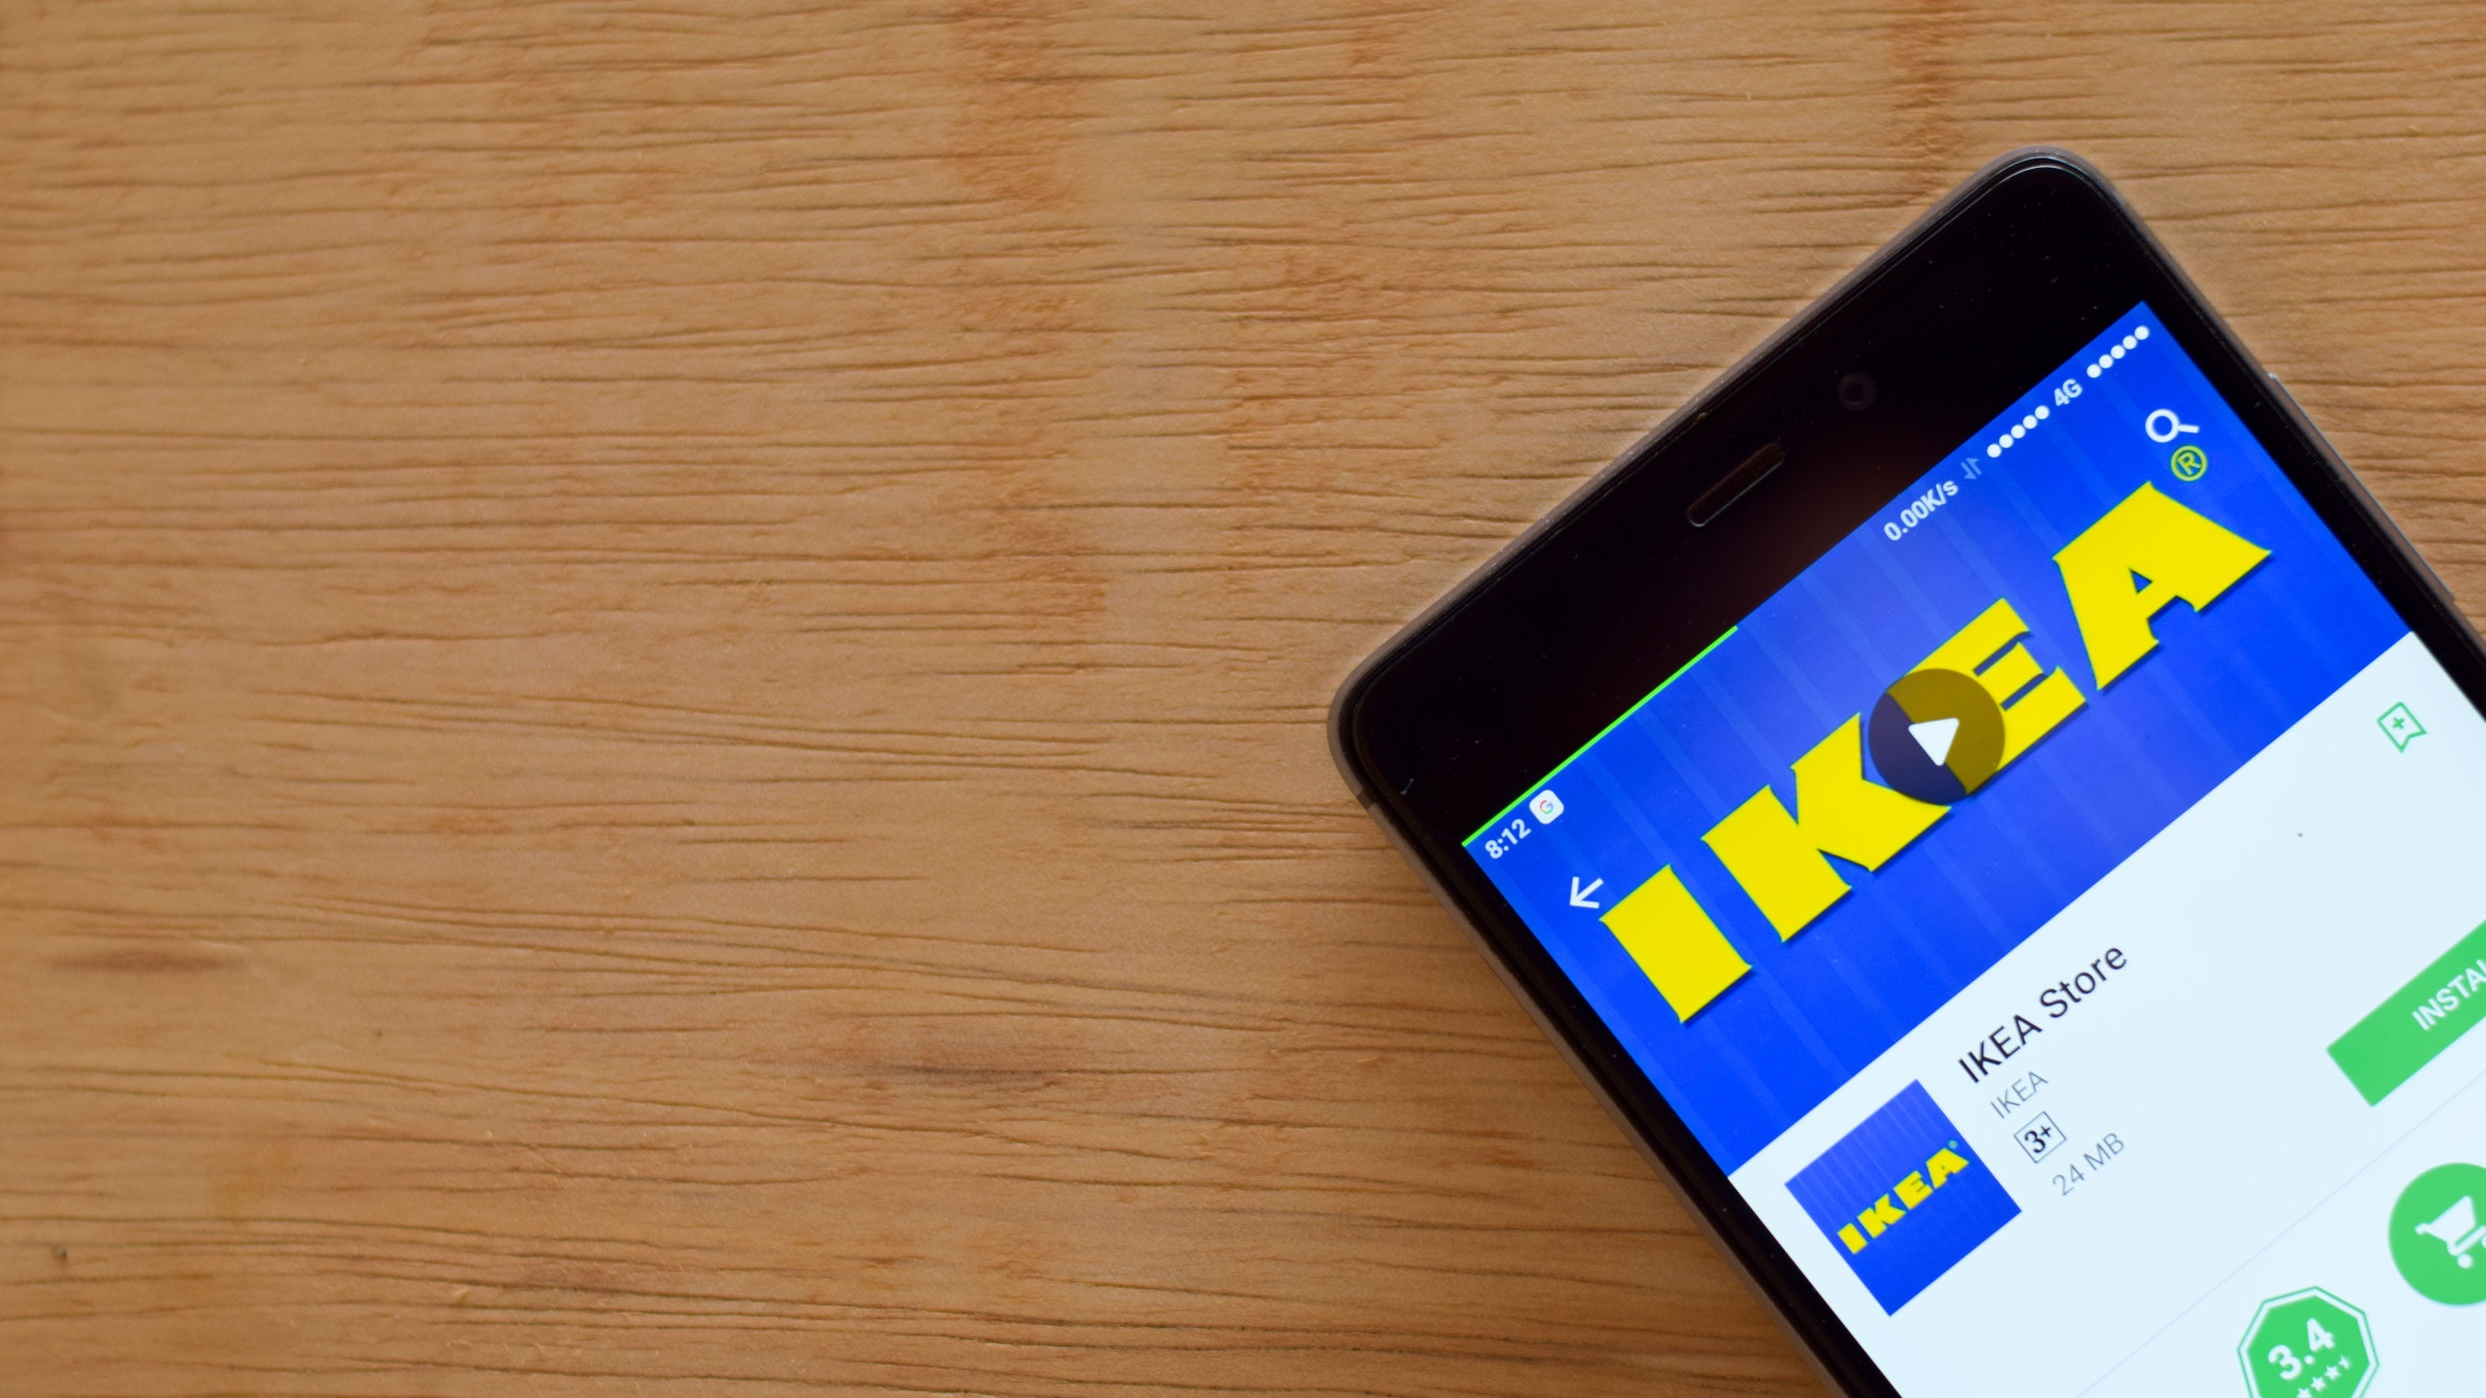 Ikea geeft shoppers regie over data